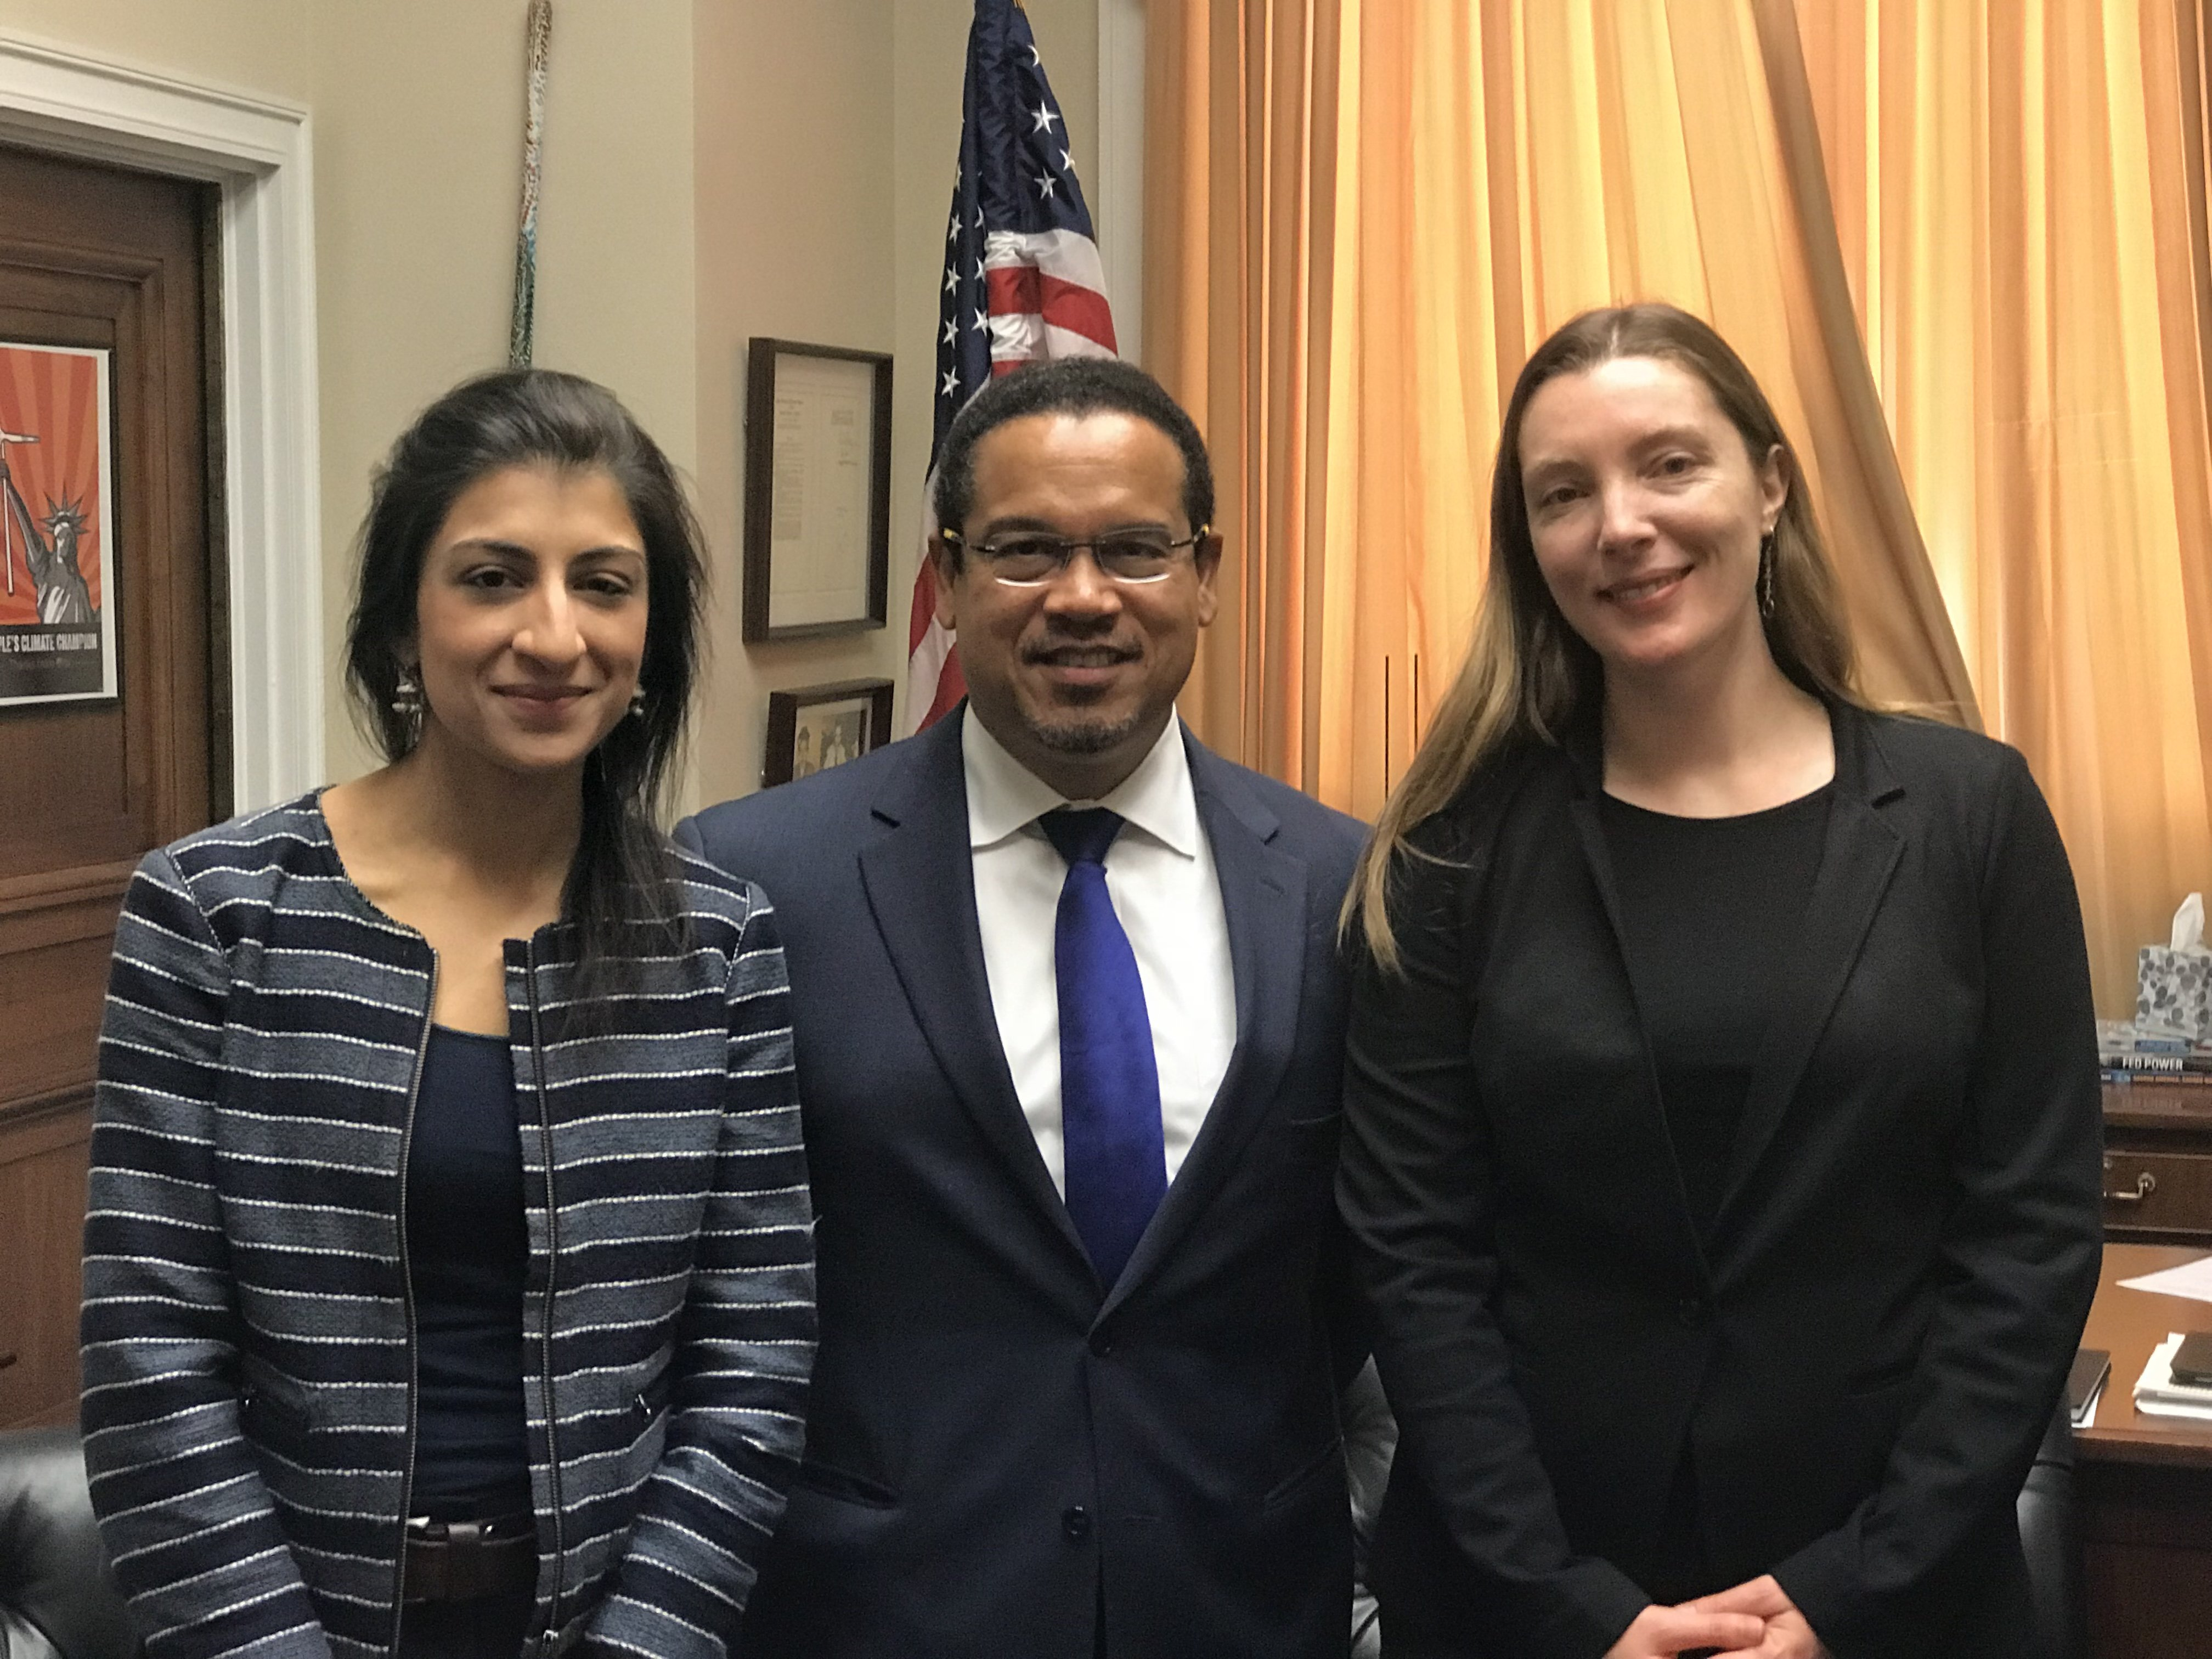 Photo: Stacy Mitchell with Rep. Keith Ellison and Lina Khan.